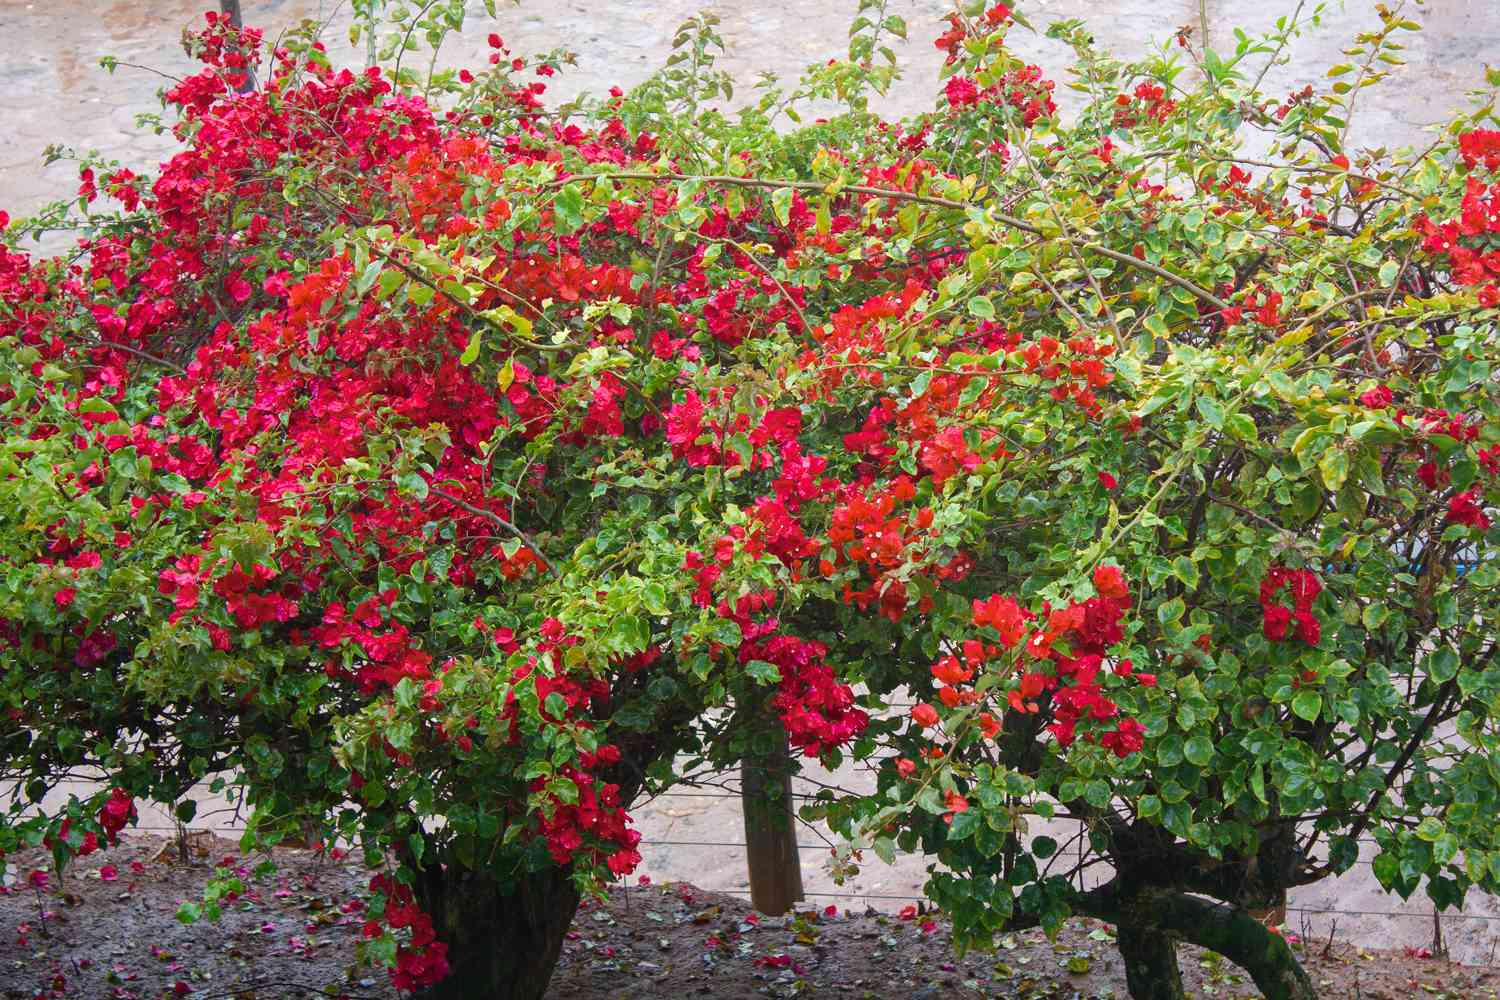 Bougainvilleas shrubs with long branches with bright red and pink flowers